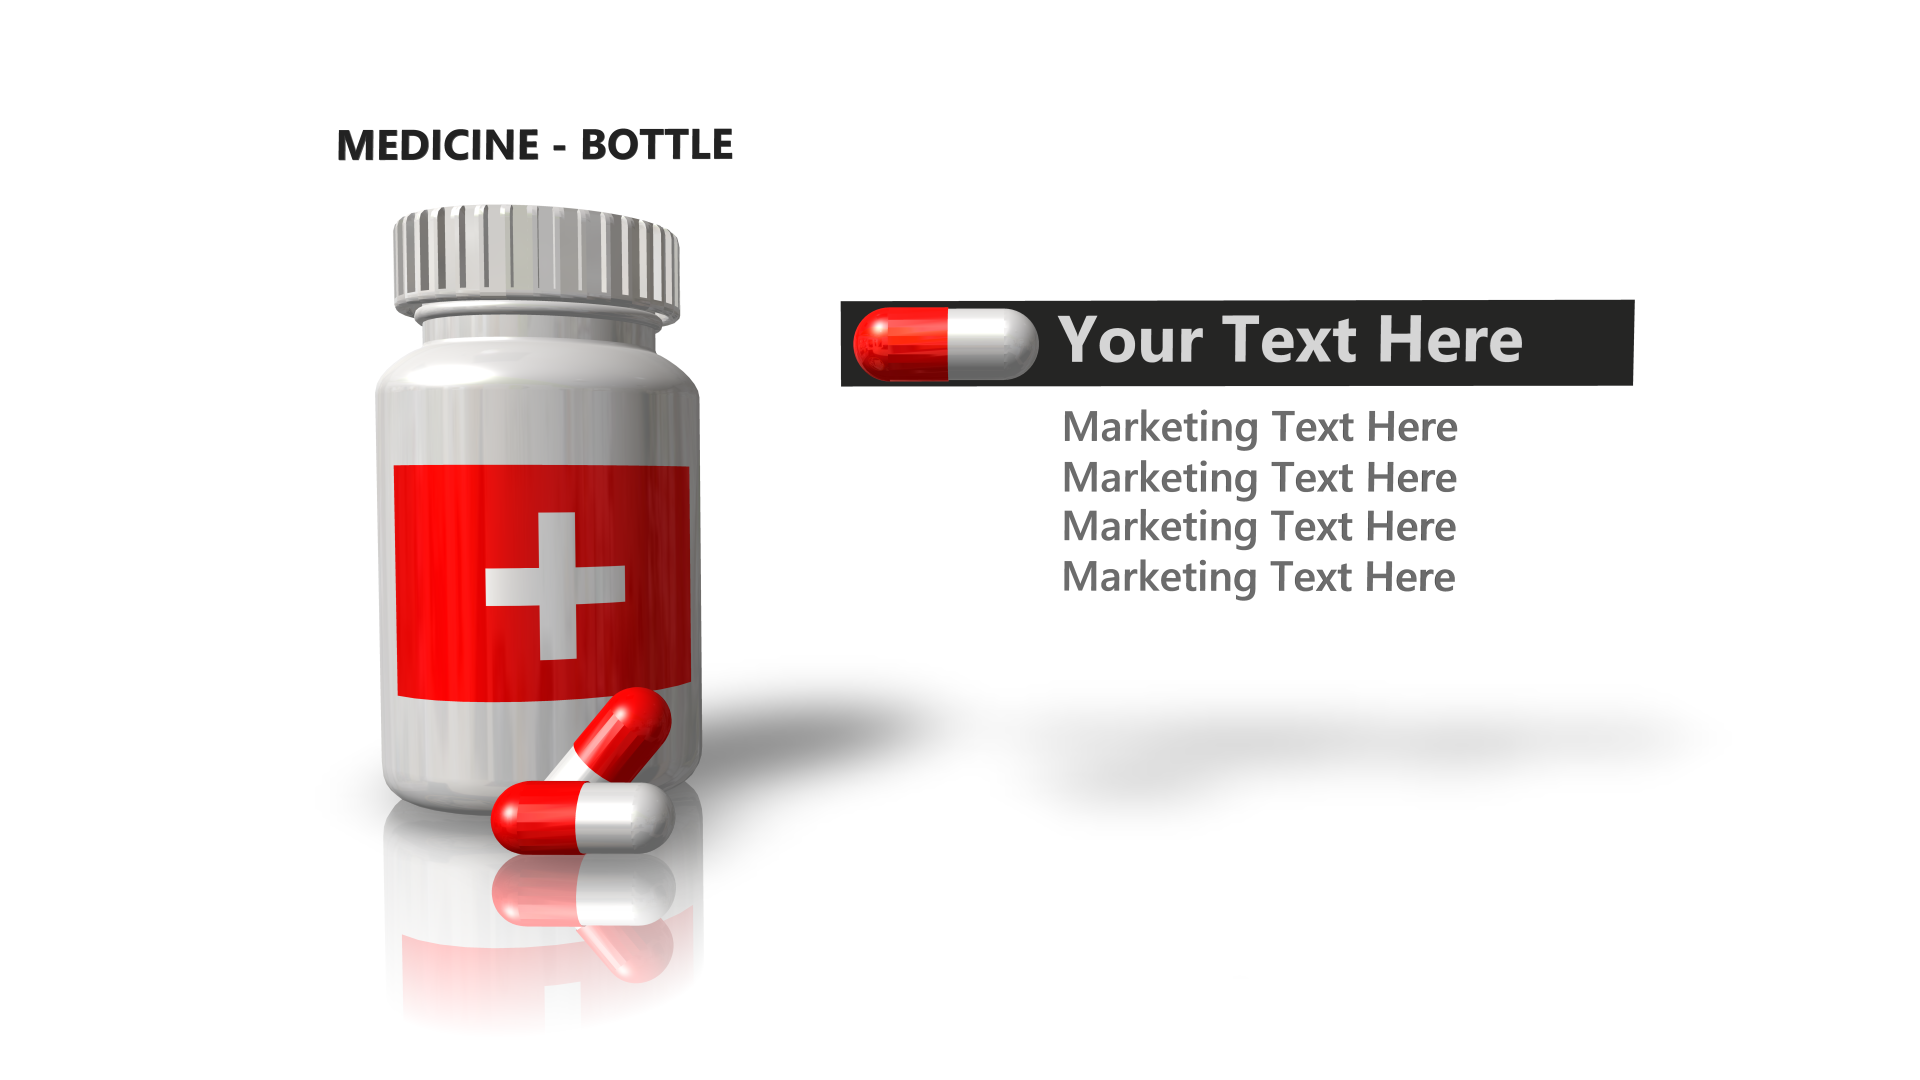 Pharma Marketing Graphics Rendered in 3D Box Shot Pro.